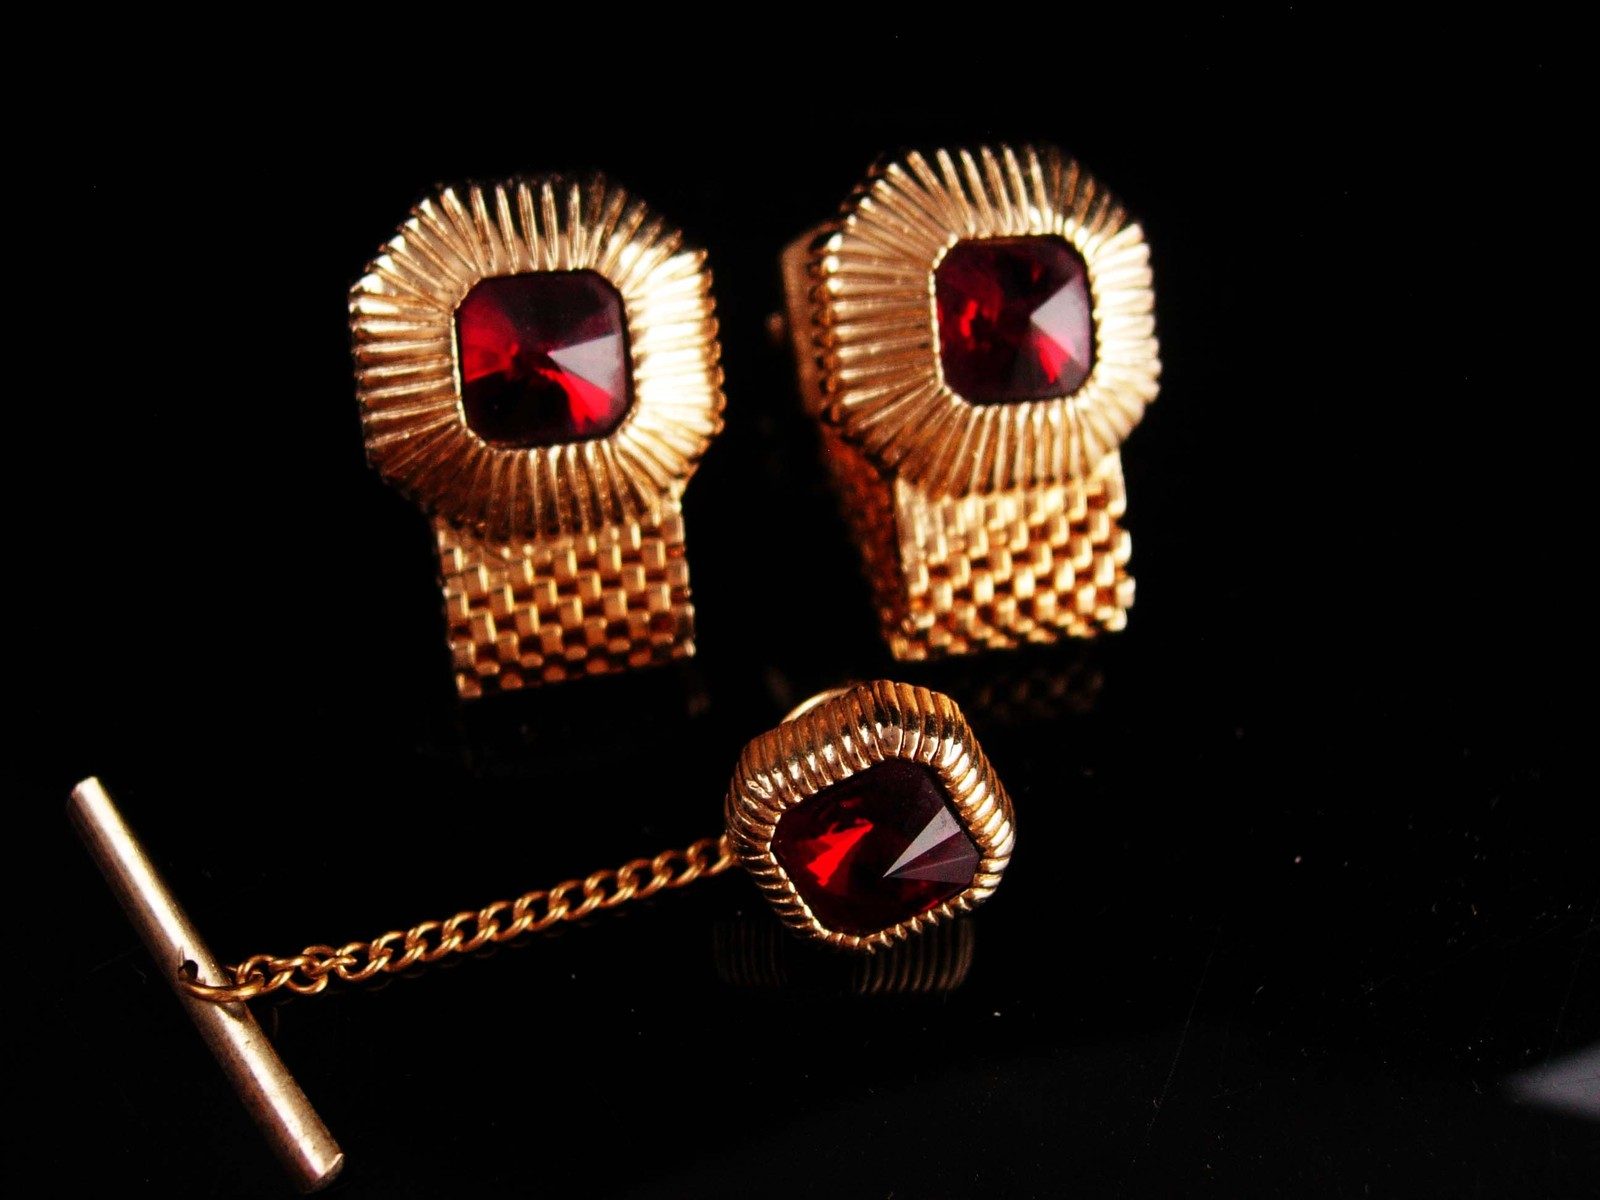 Garnet Wrap Mesh Cufflinks - Red  Rhinestone Jeweled tie tack - Birthday Wedding